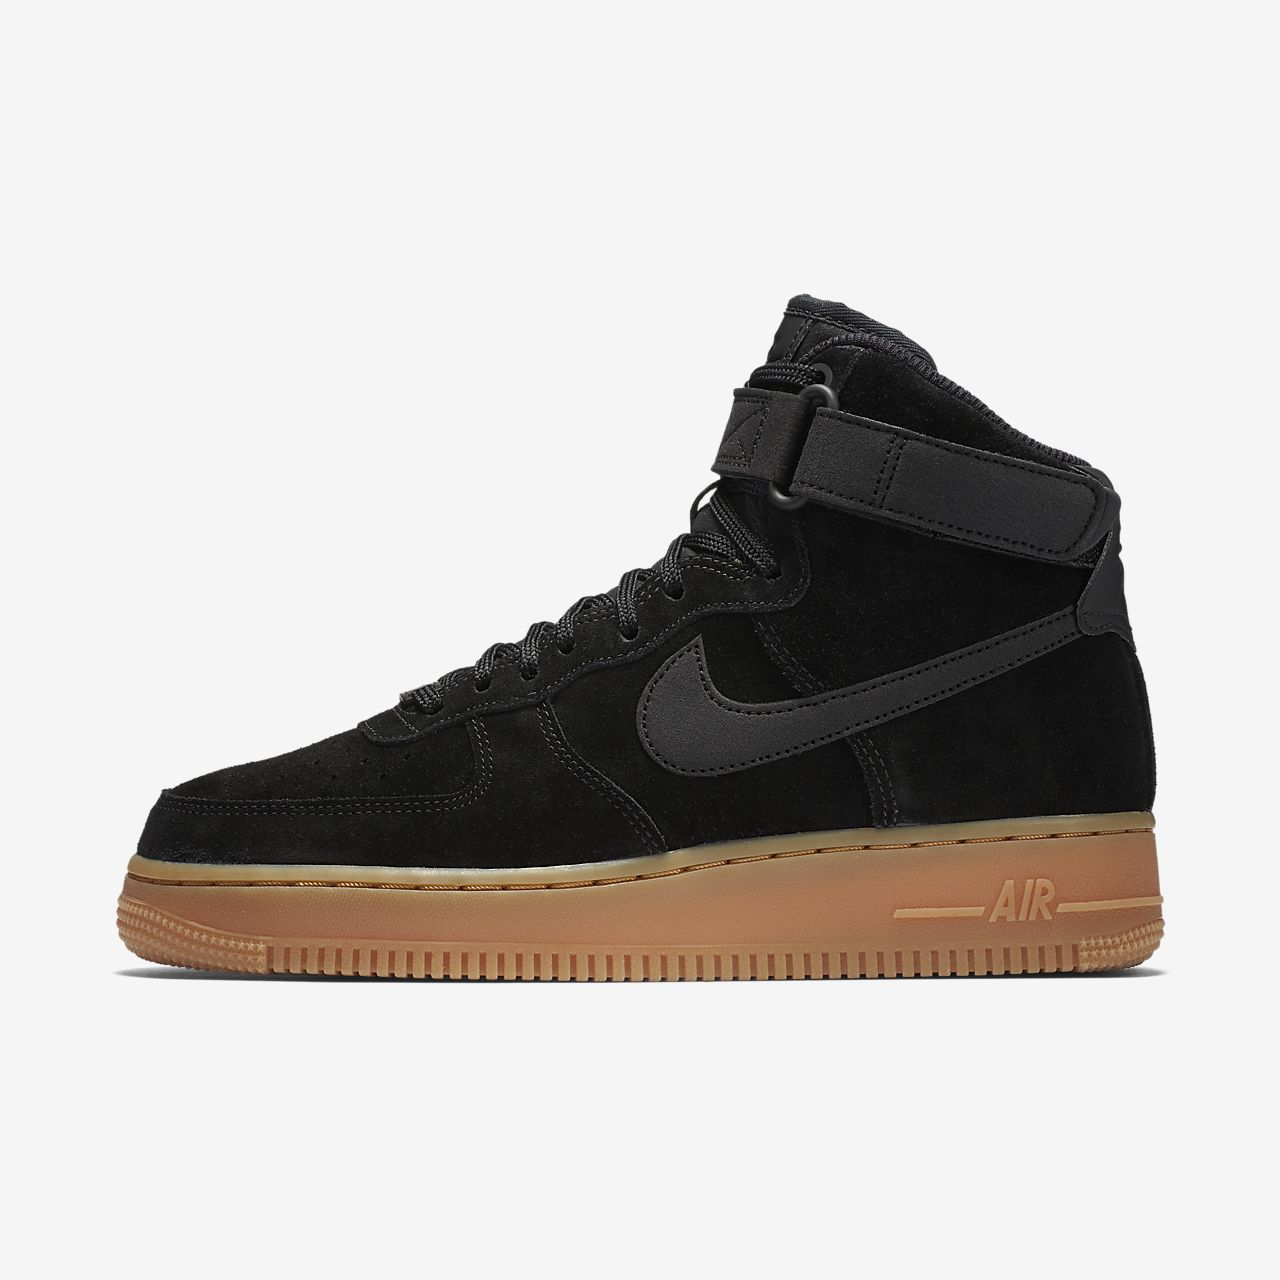 air force 1 high black gum bottom nz